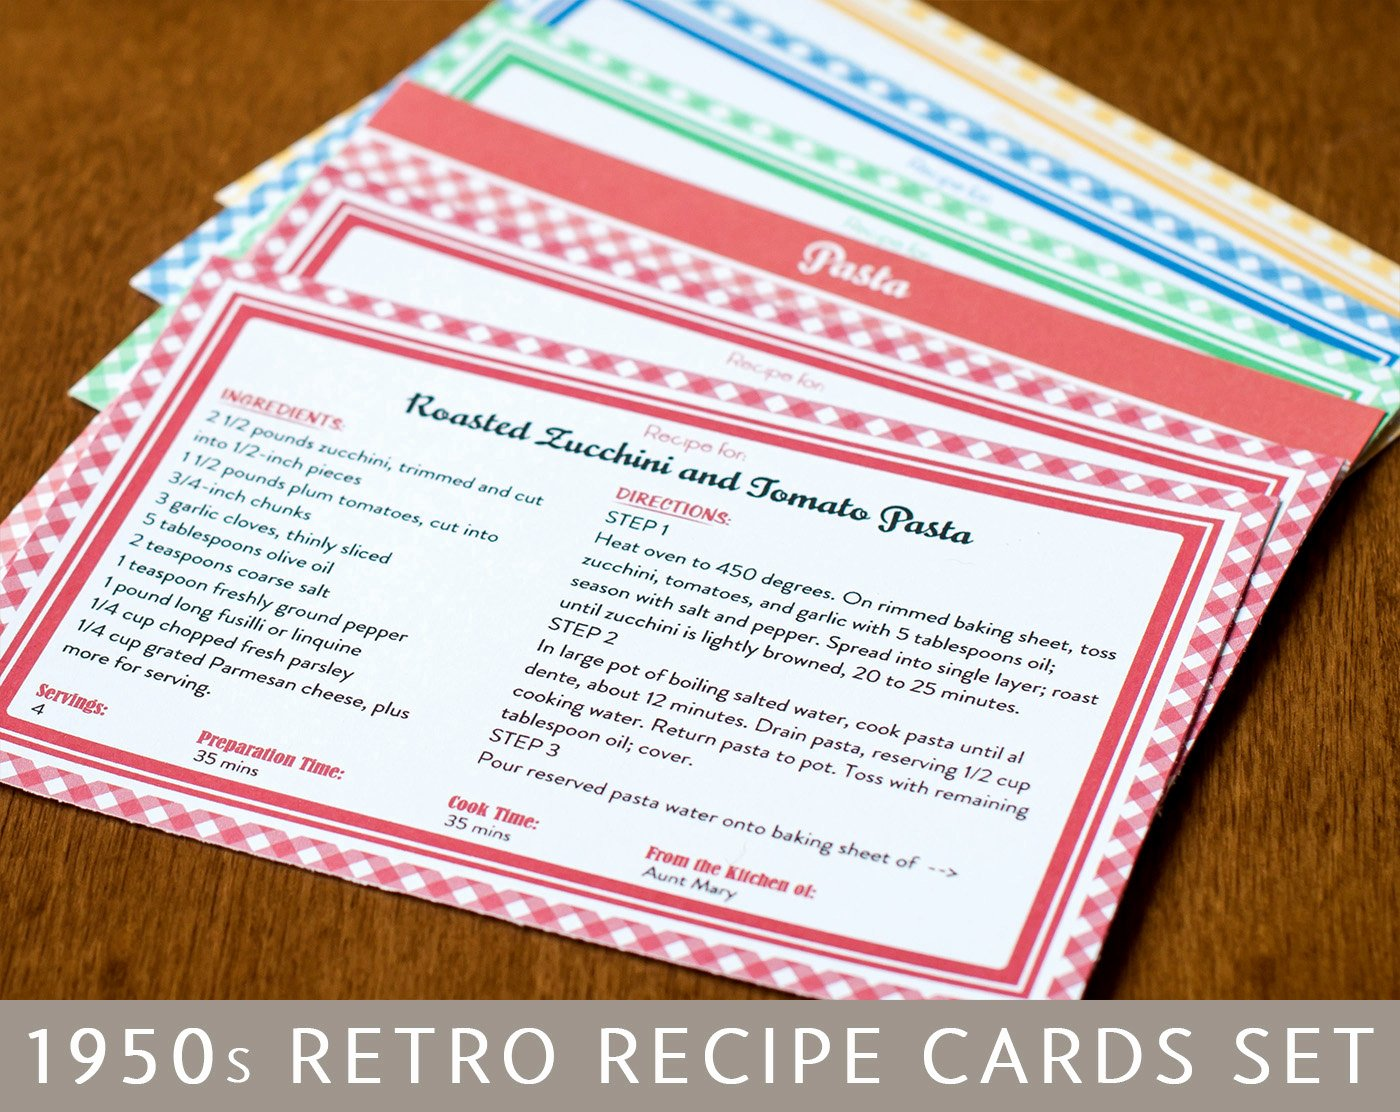 Fillable Recipe Card Template Fresh Printable Recipe Cards and Dividers Retro 1950s Design